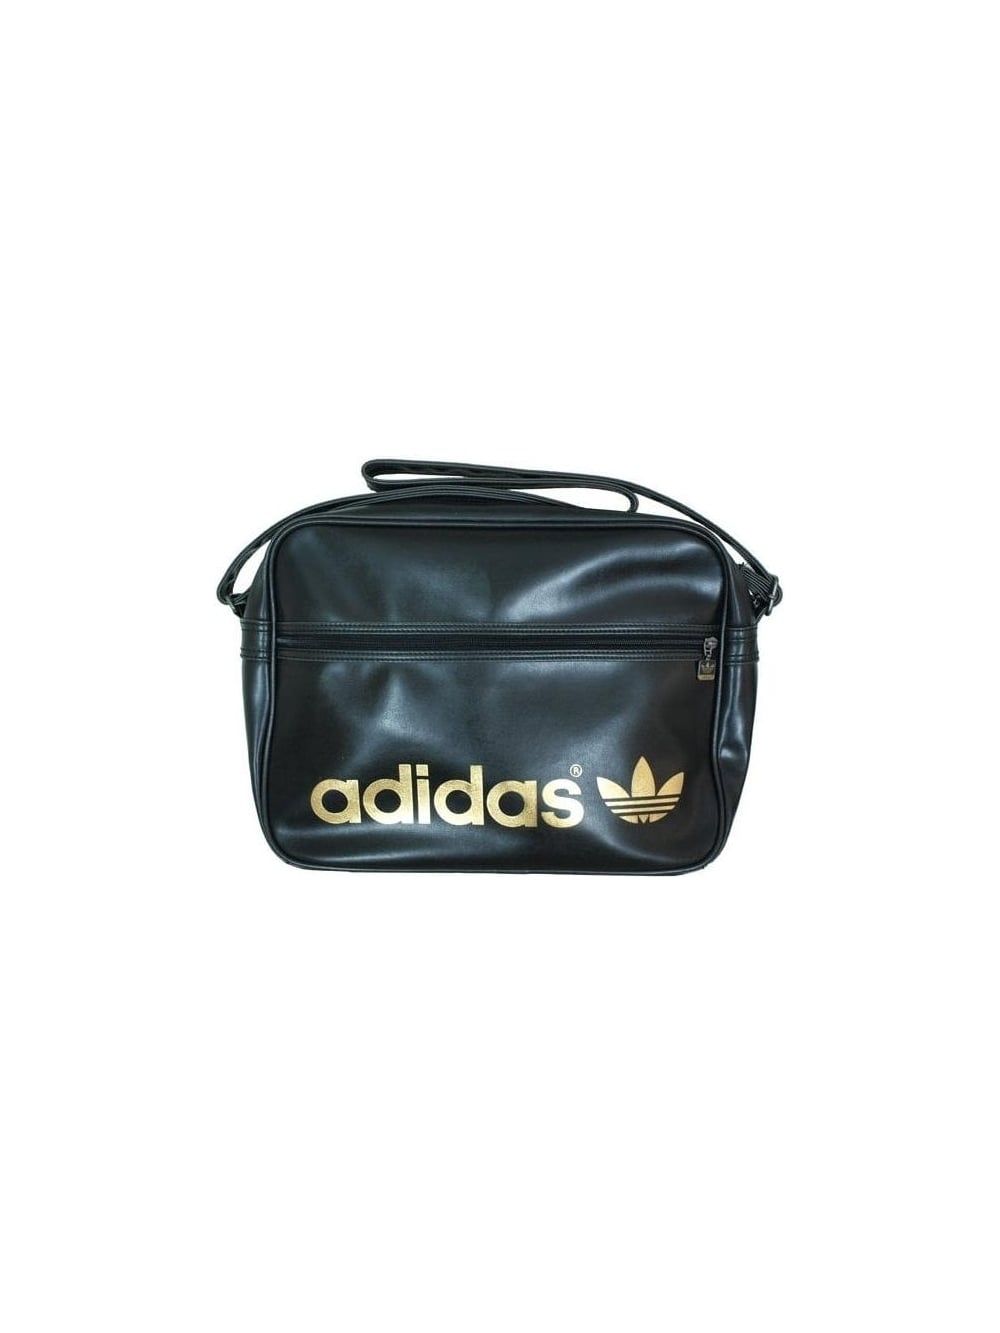 17eacd5d3f Mens adidas Originals Airline Bag - Black/Gold | SALE | Buy Online UK